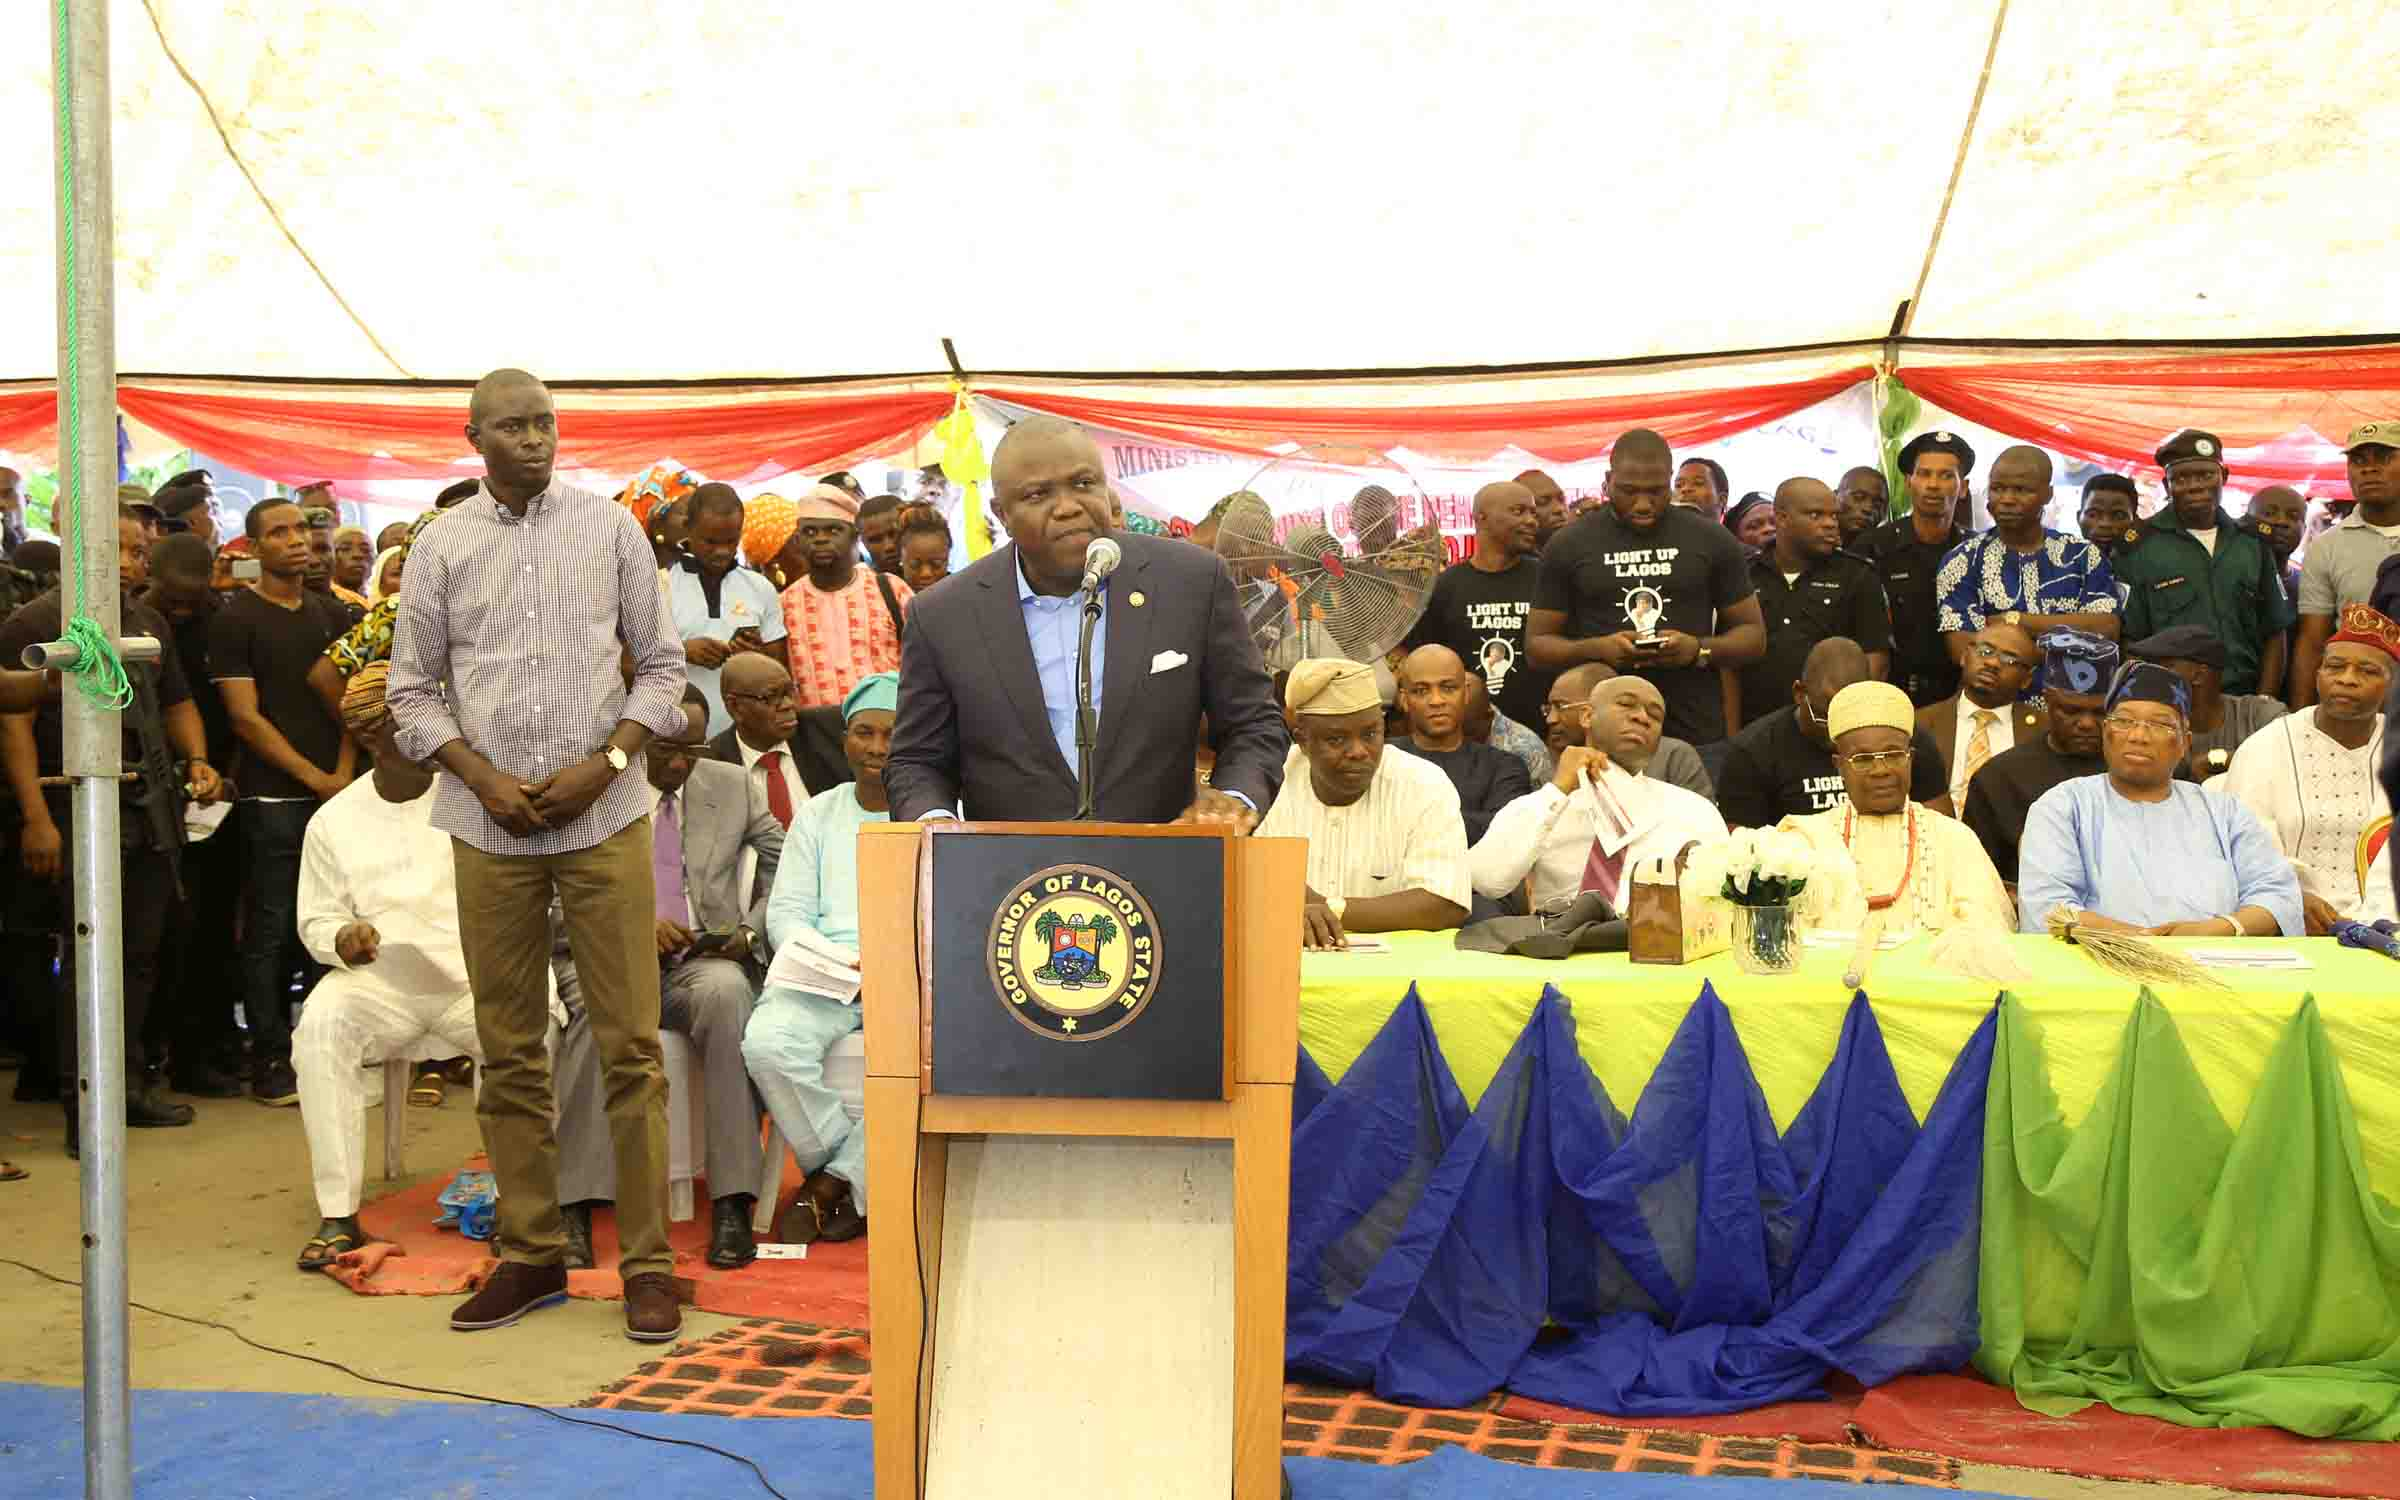 Address Delivered By His Excellency, Mr. Akinwunmi Ambode, The Governor Of Lagos State At The Commissioning Of Community Electricity Project For 68 Communities In Ibeju-Lekki On Thursday 24th March, 2016